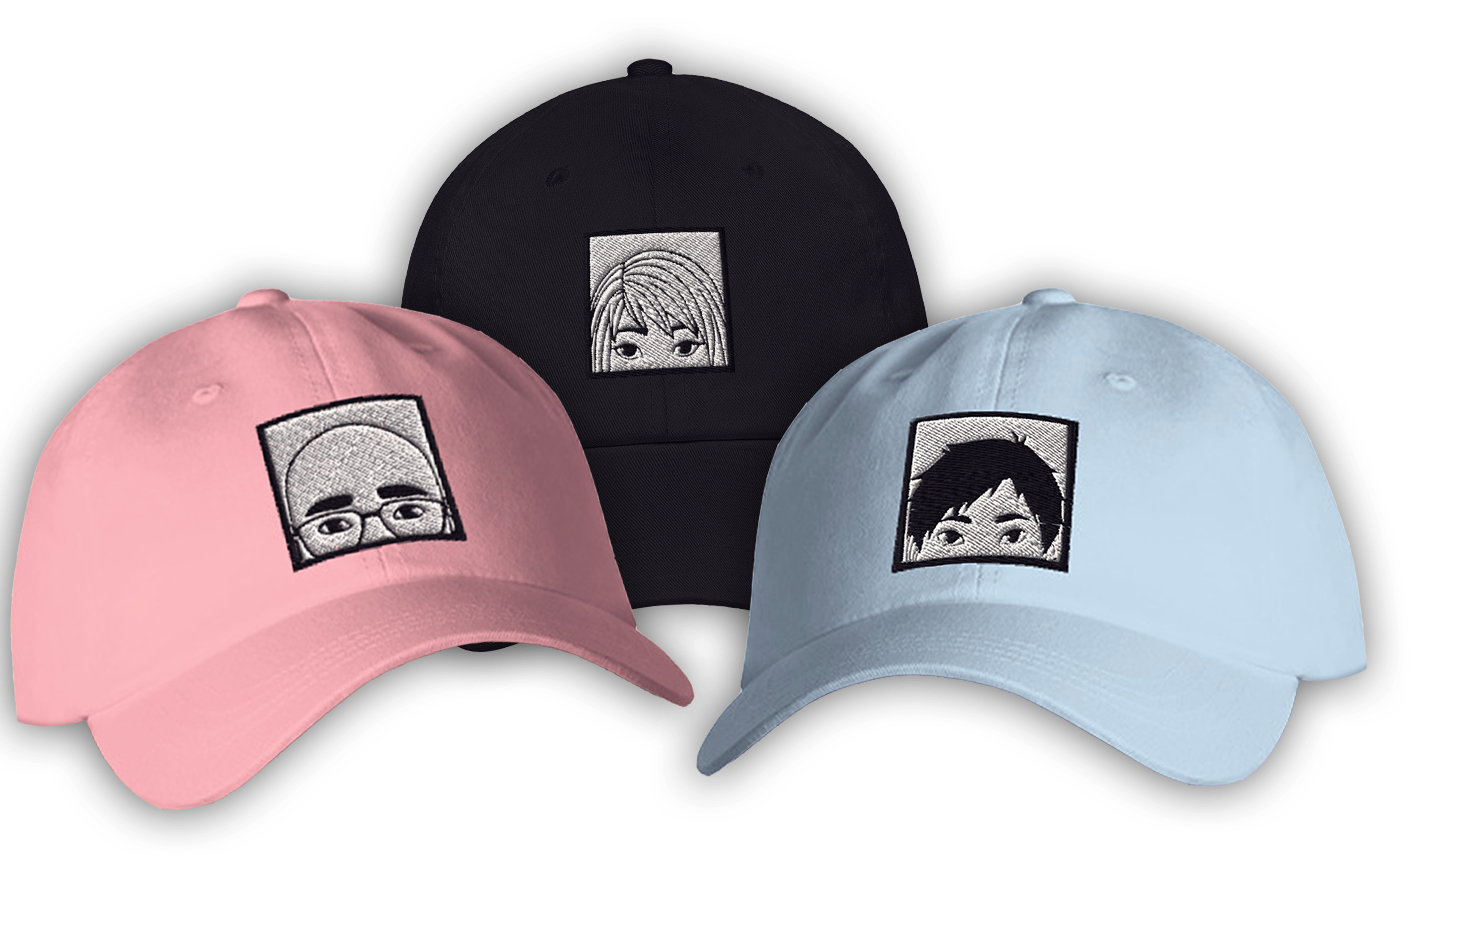 Want to show your support for your favourite character? No problem with these cute hats!